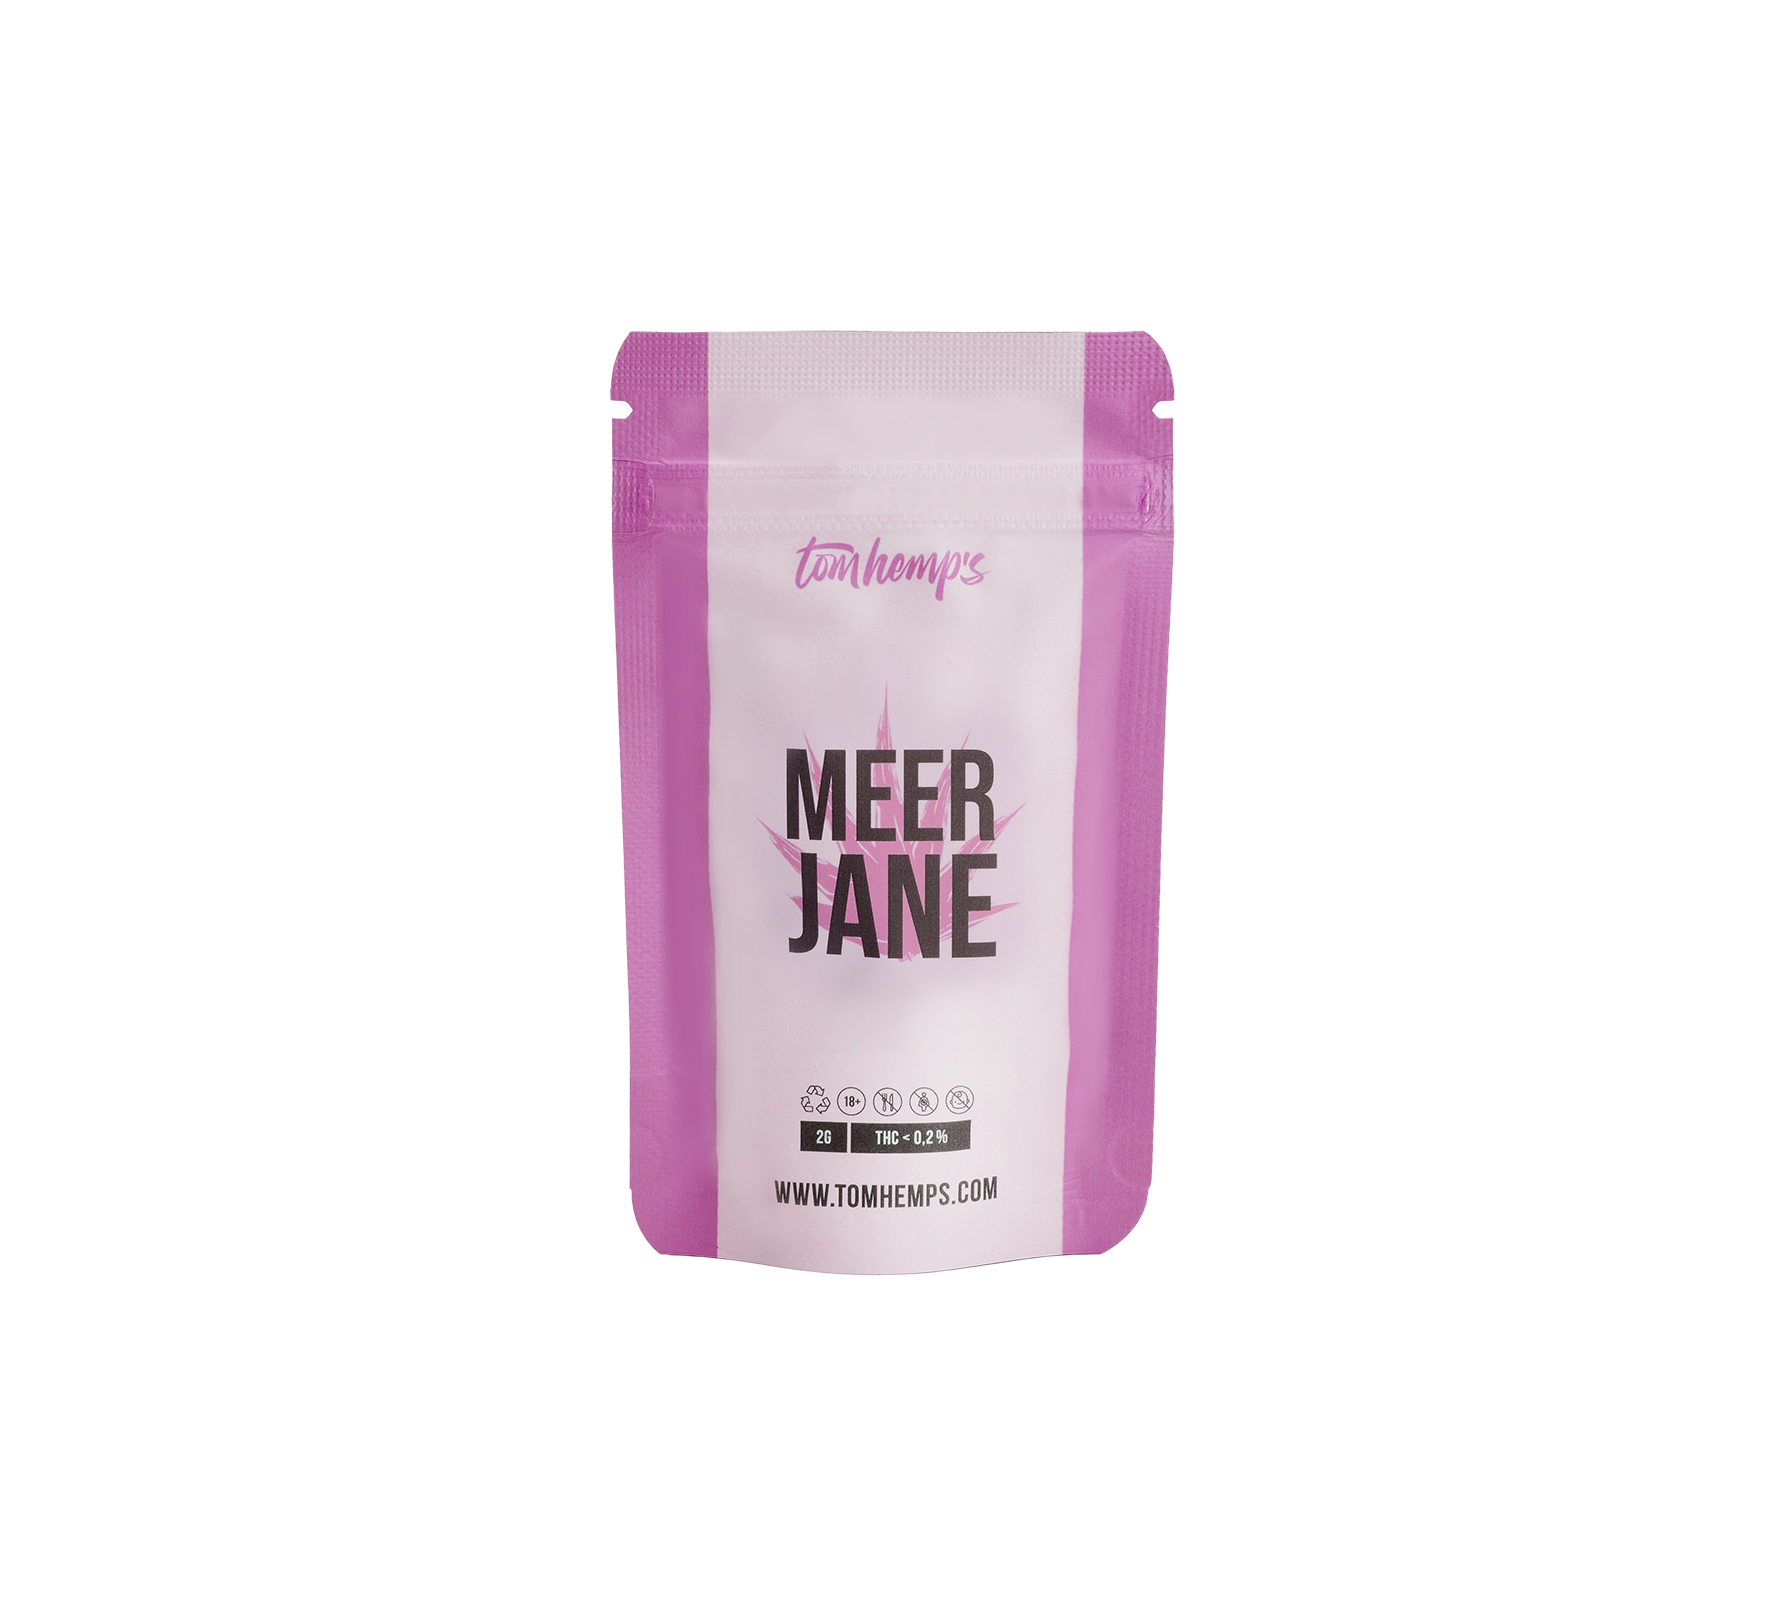 Tom_Hemps_product_ecobags_mary_jane_2g